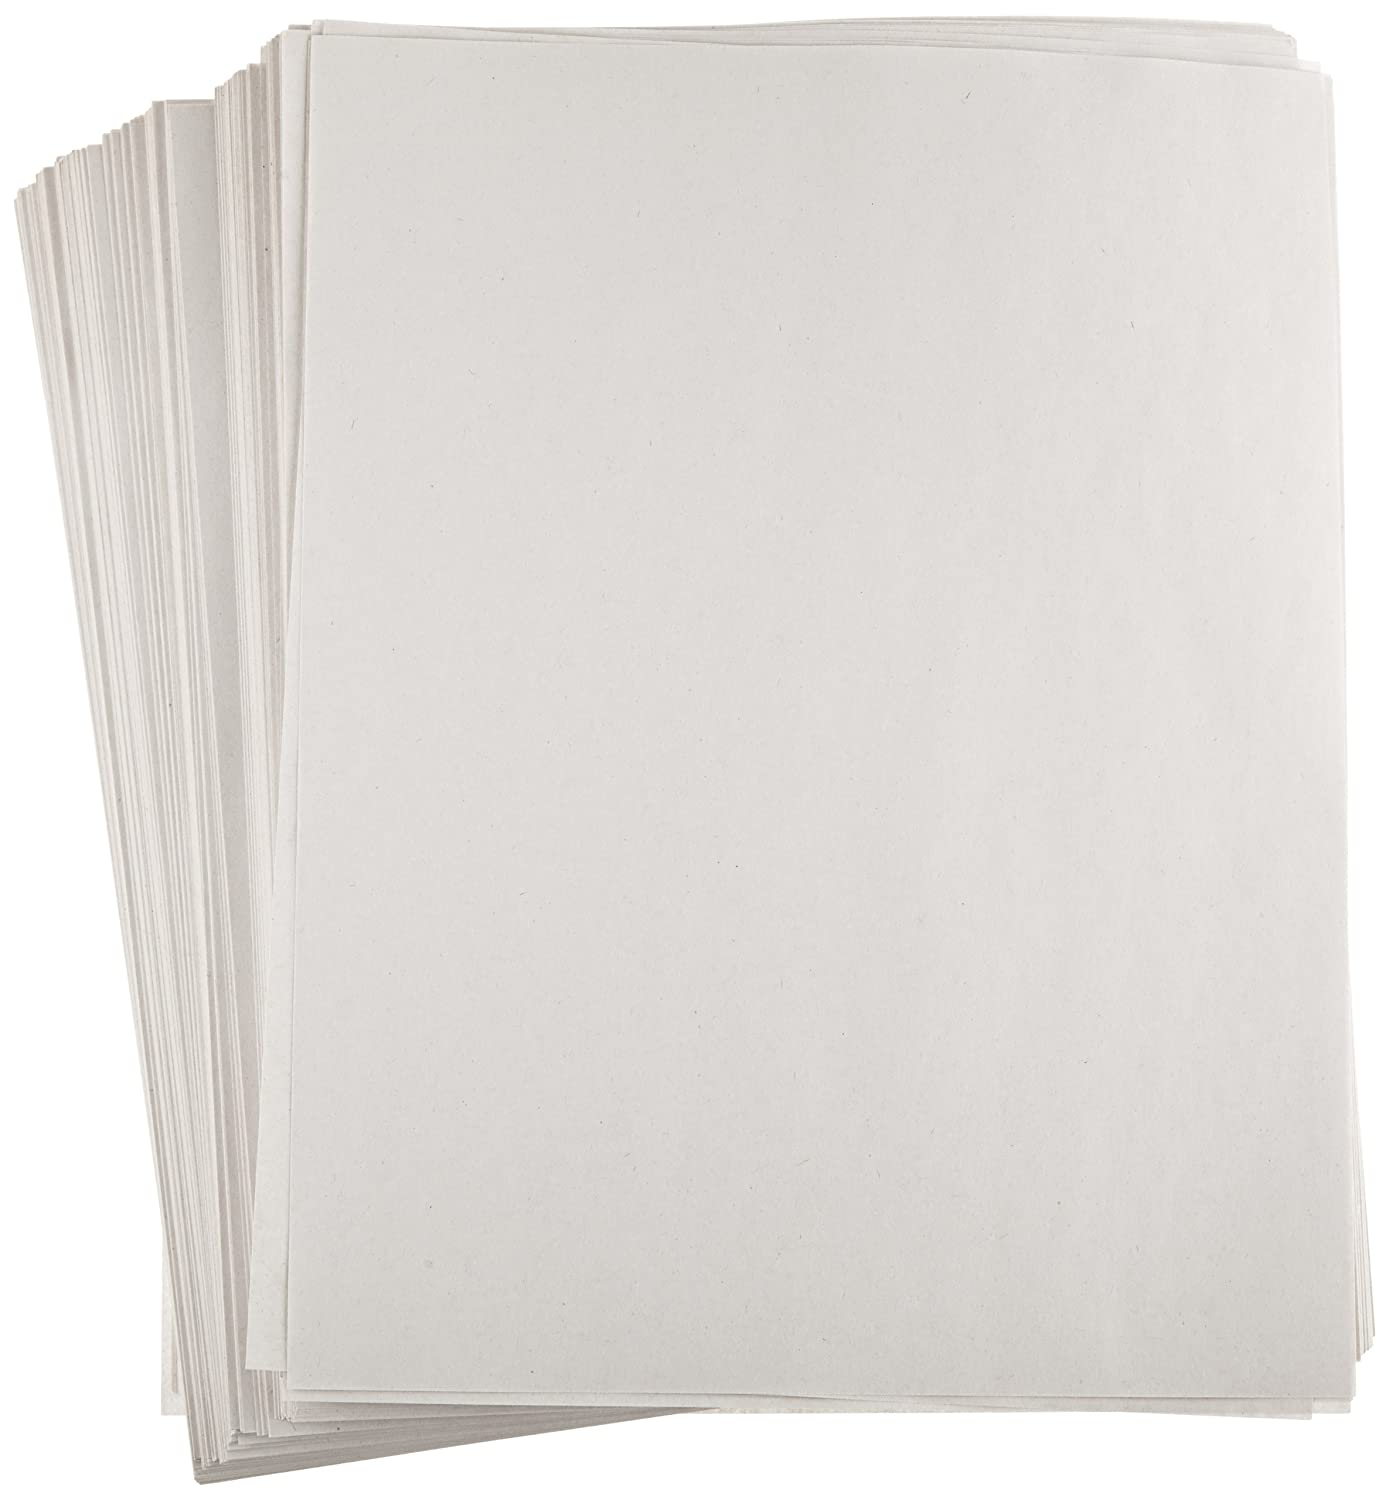 Sax Plain White Newsprint Newspaper - 8 1/2 x 11 inches - Pack of 500 - White